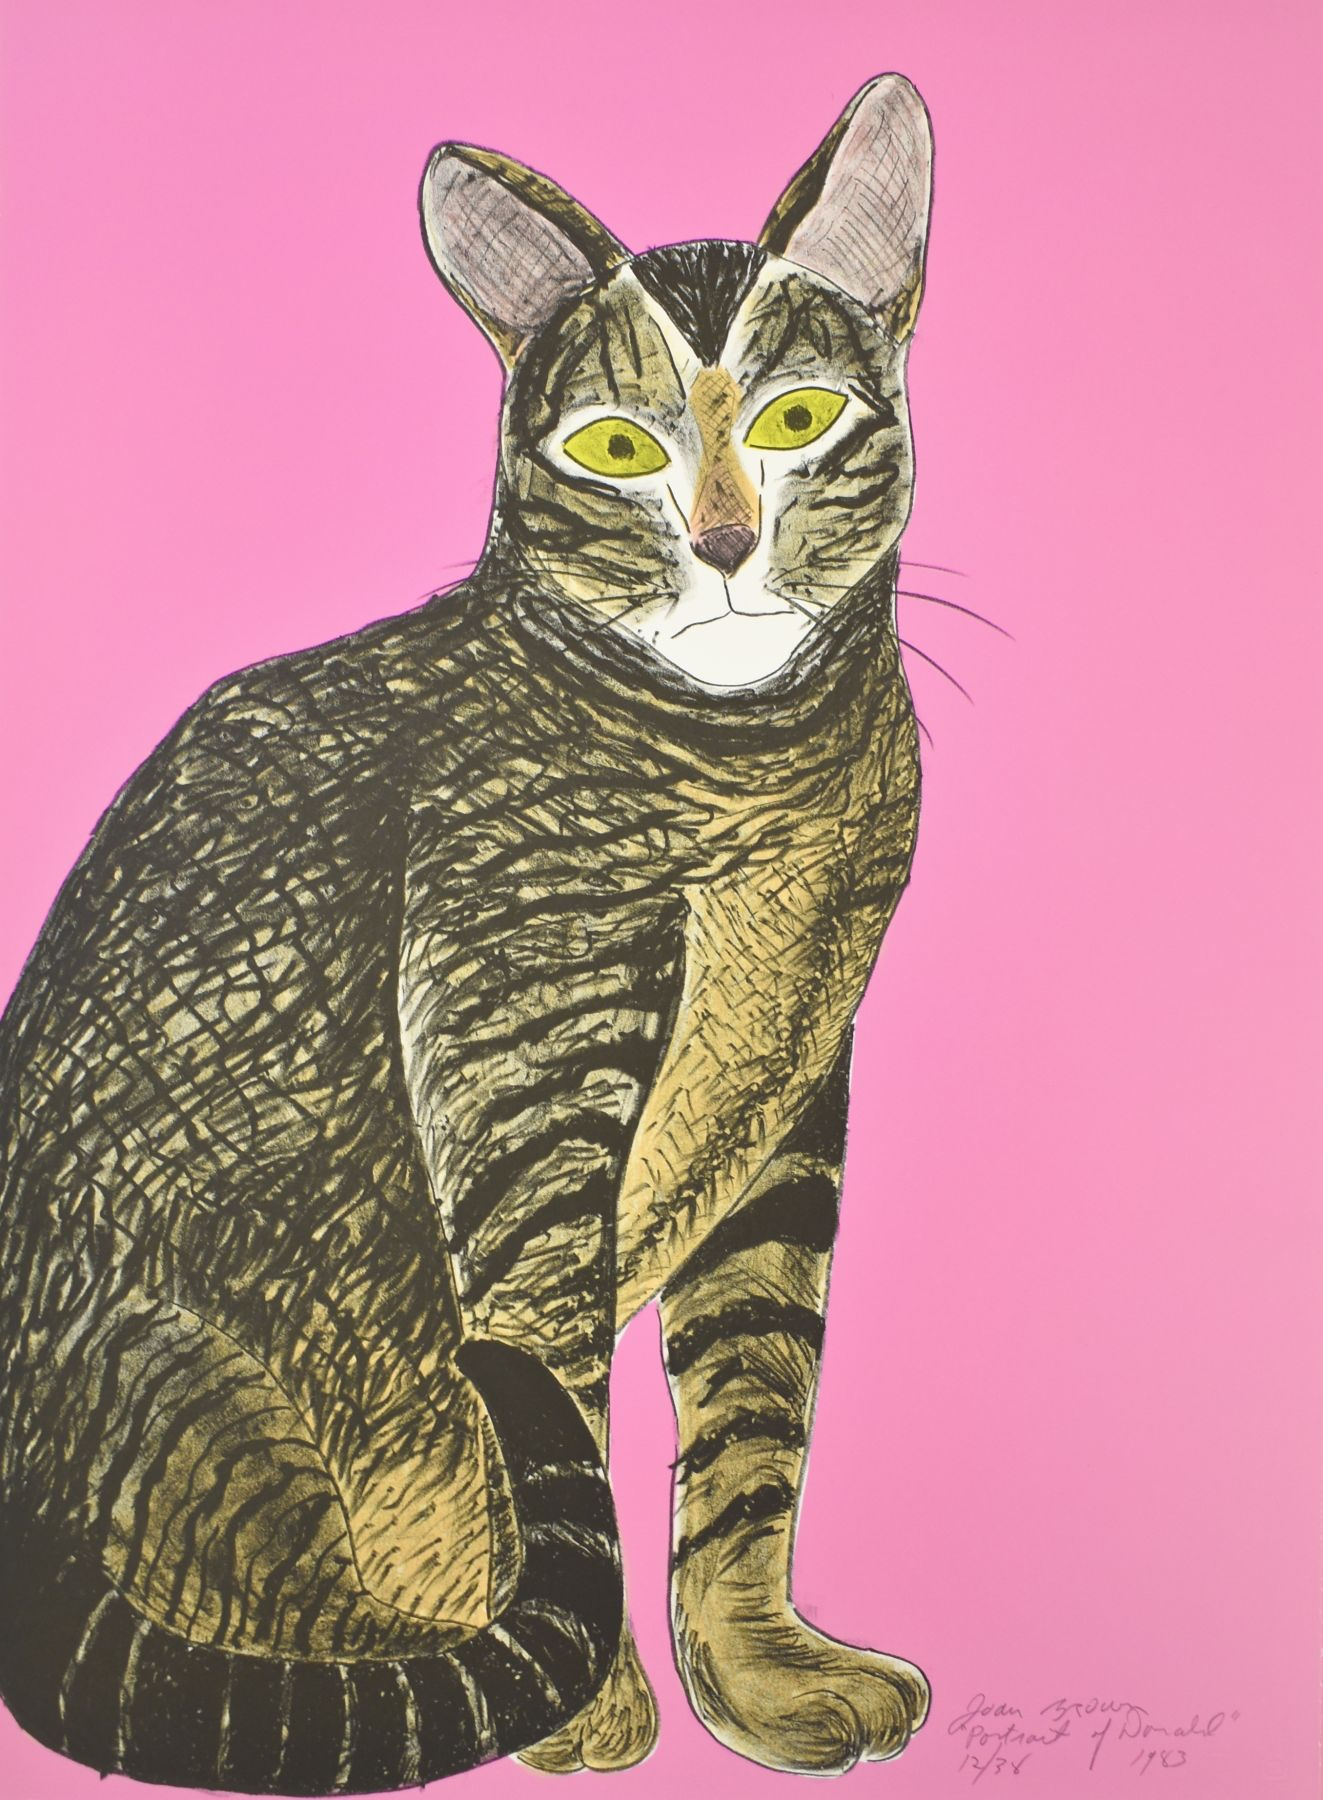 Joan Brown, Donald - Pink, 1983, lithograph, 30 x 22 in., © The Joan Brown Estate.